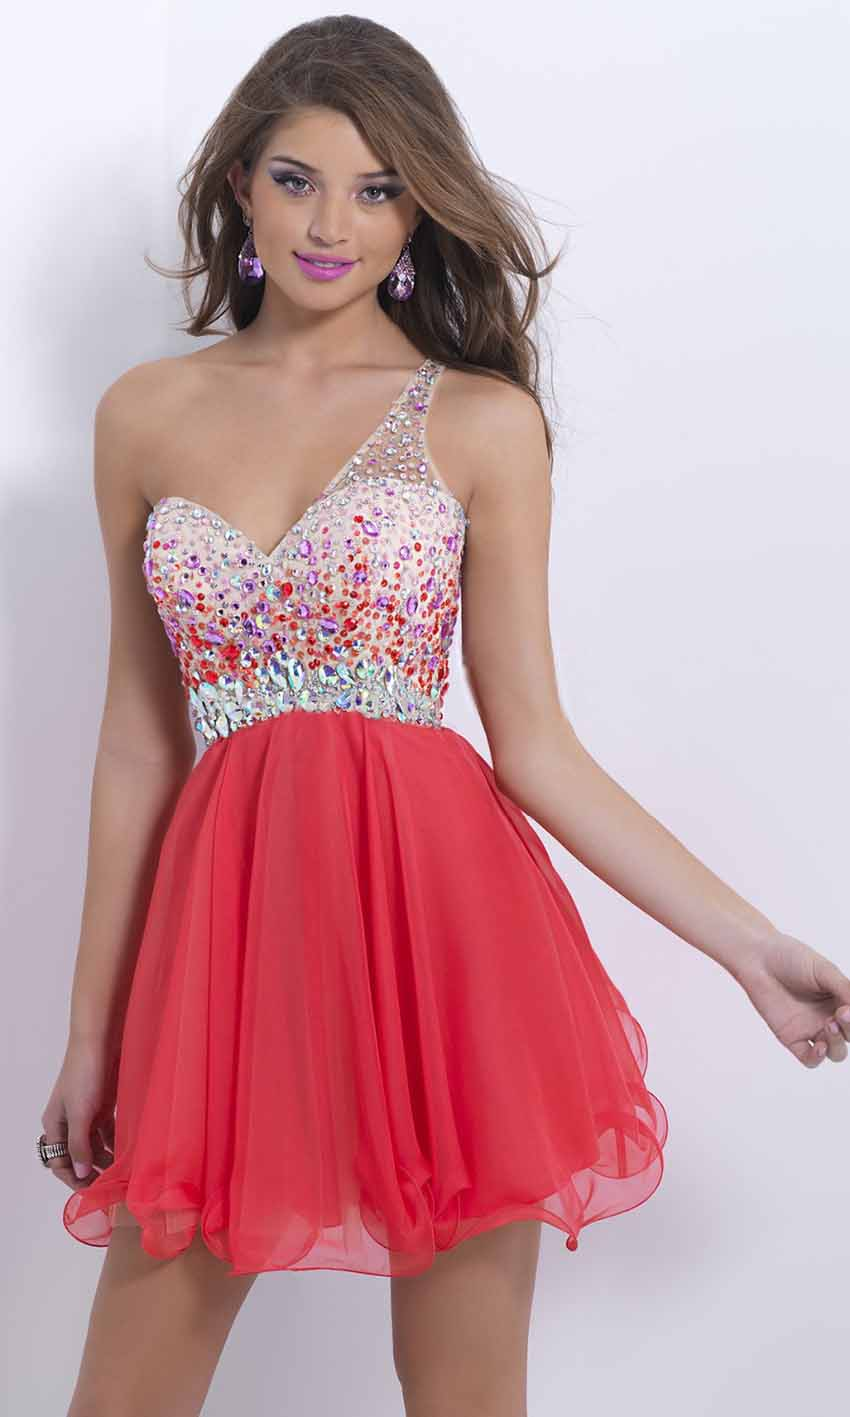 Amazing rhinestone one shoulder short red prom dress uk ksp386 amazing rhinestone one shoulder short red prom dress uk ksp386 ksp386 9700 cheap prom dress uk wedding bridesmaid dresses prom 2016 dresses ombrellifo Gallery